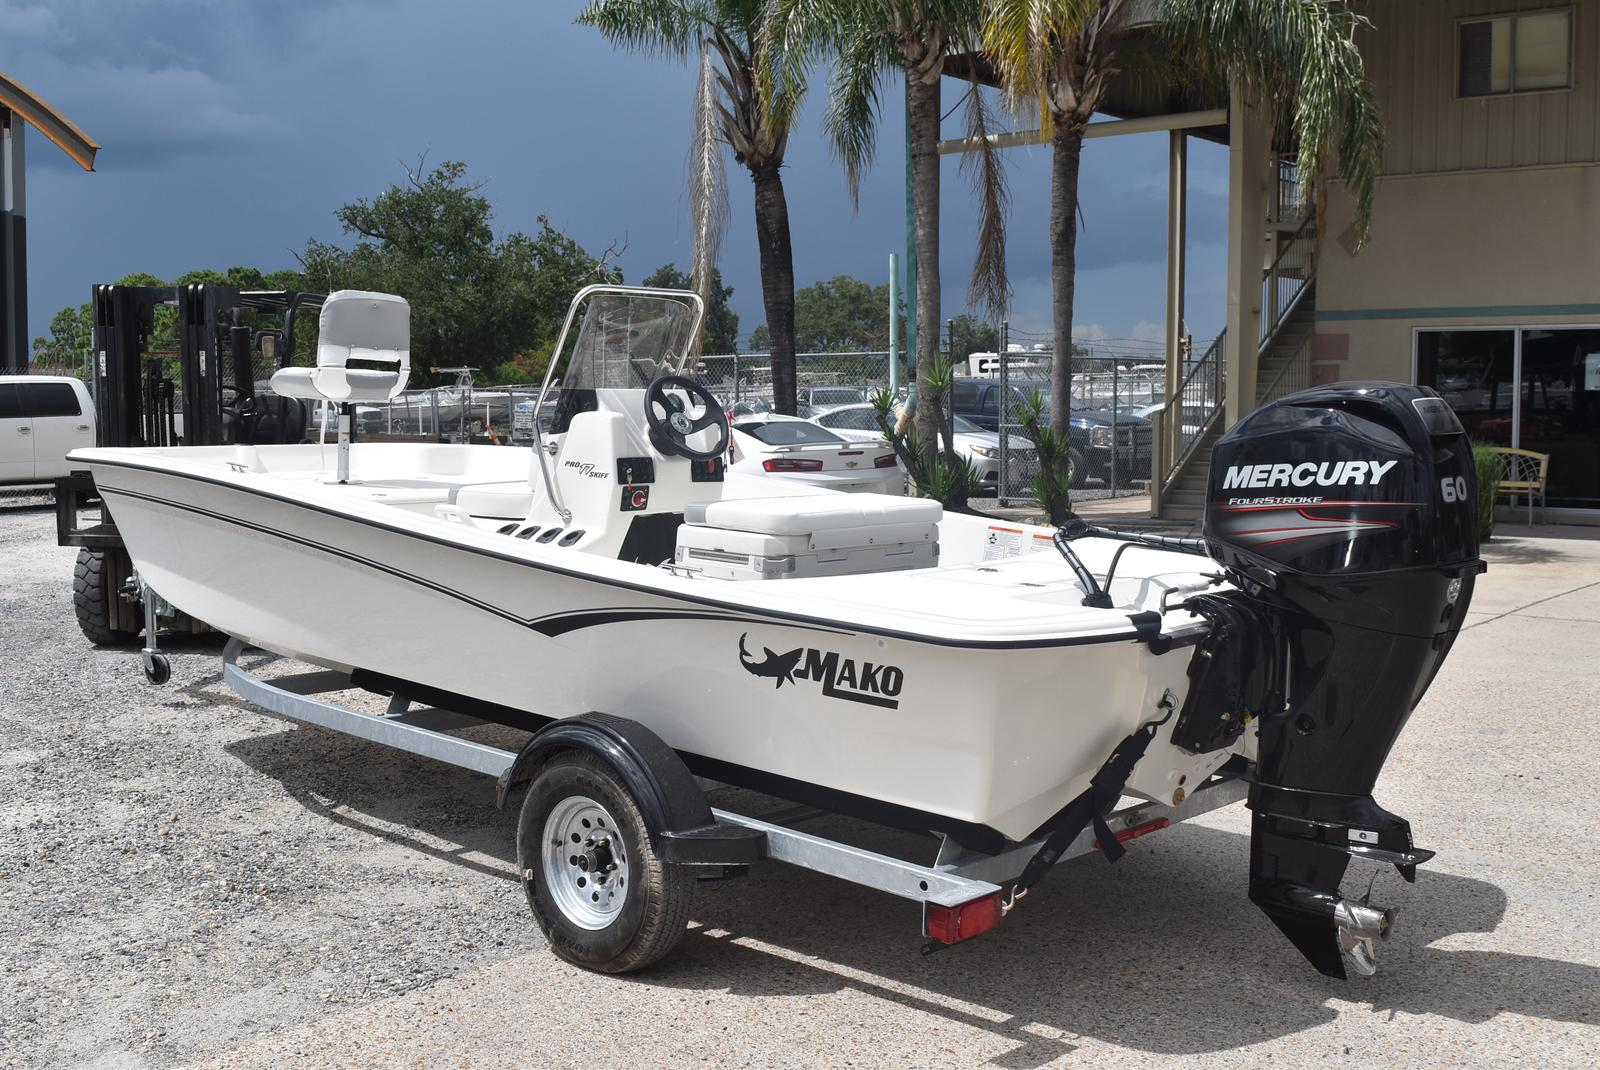 2020 Mako boat for sale, model of the boat is Pro Skiff 17, 75 ELPT & Image # 170 of 702